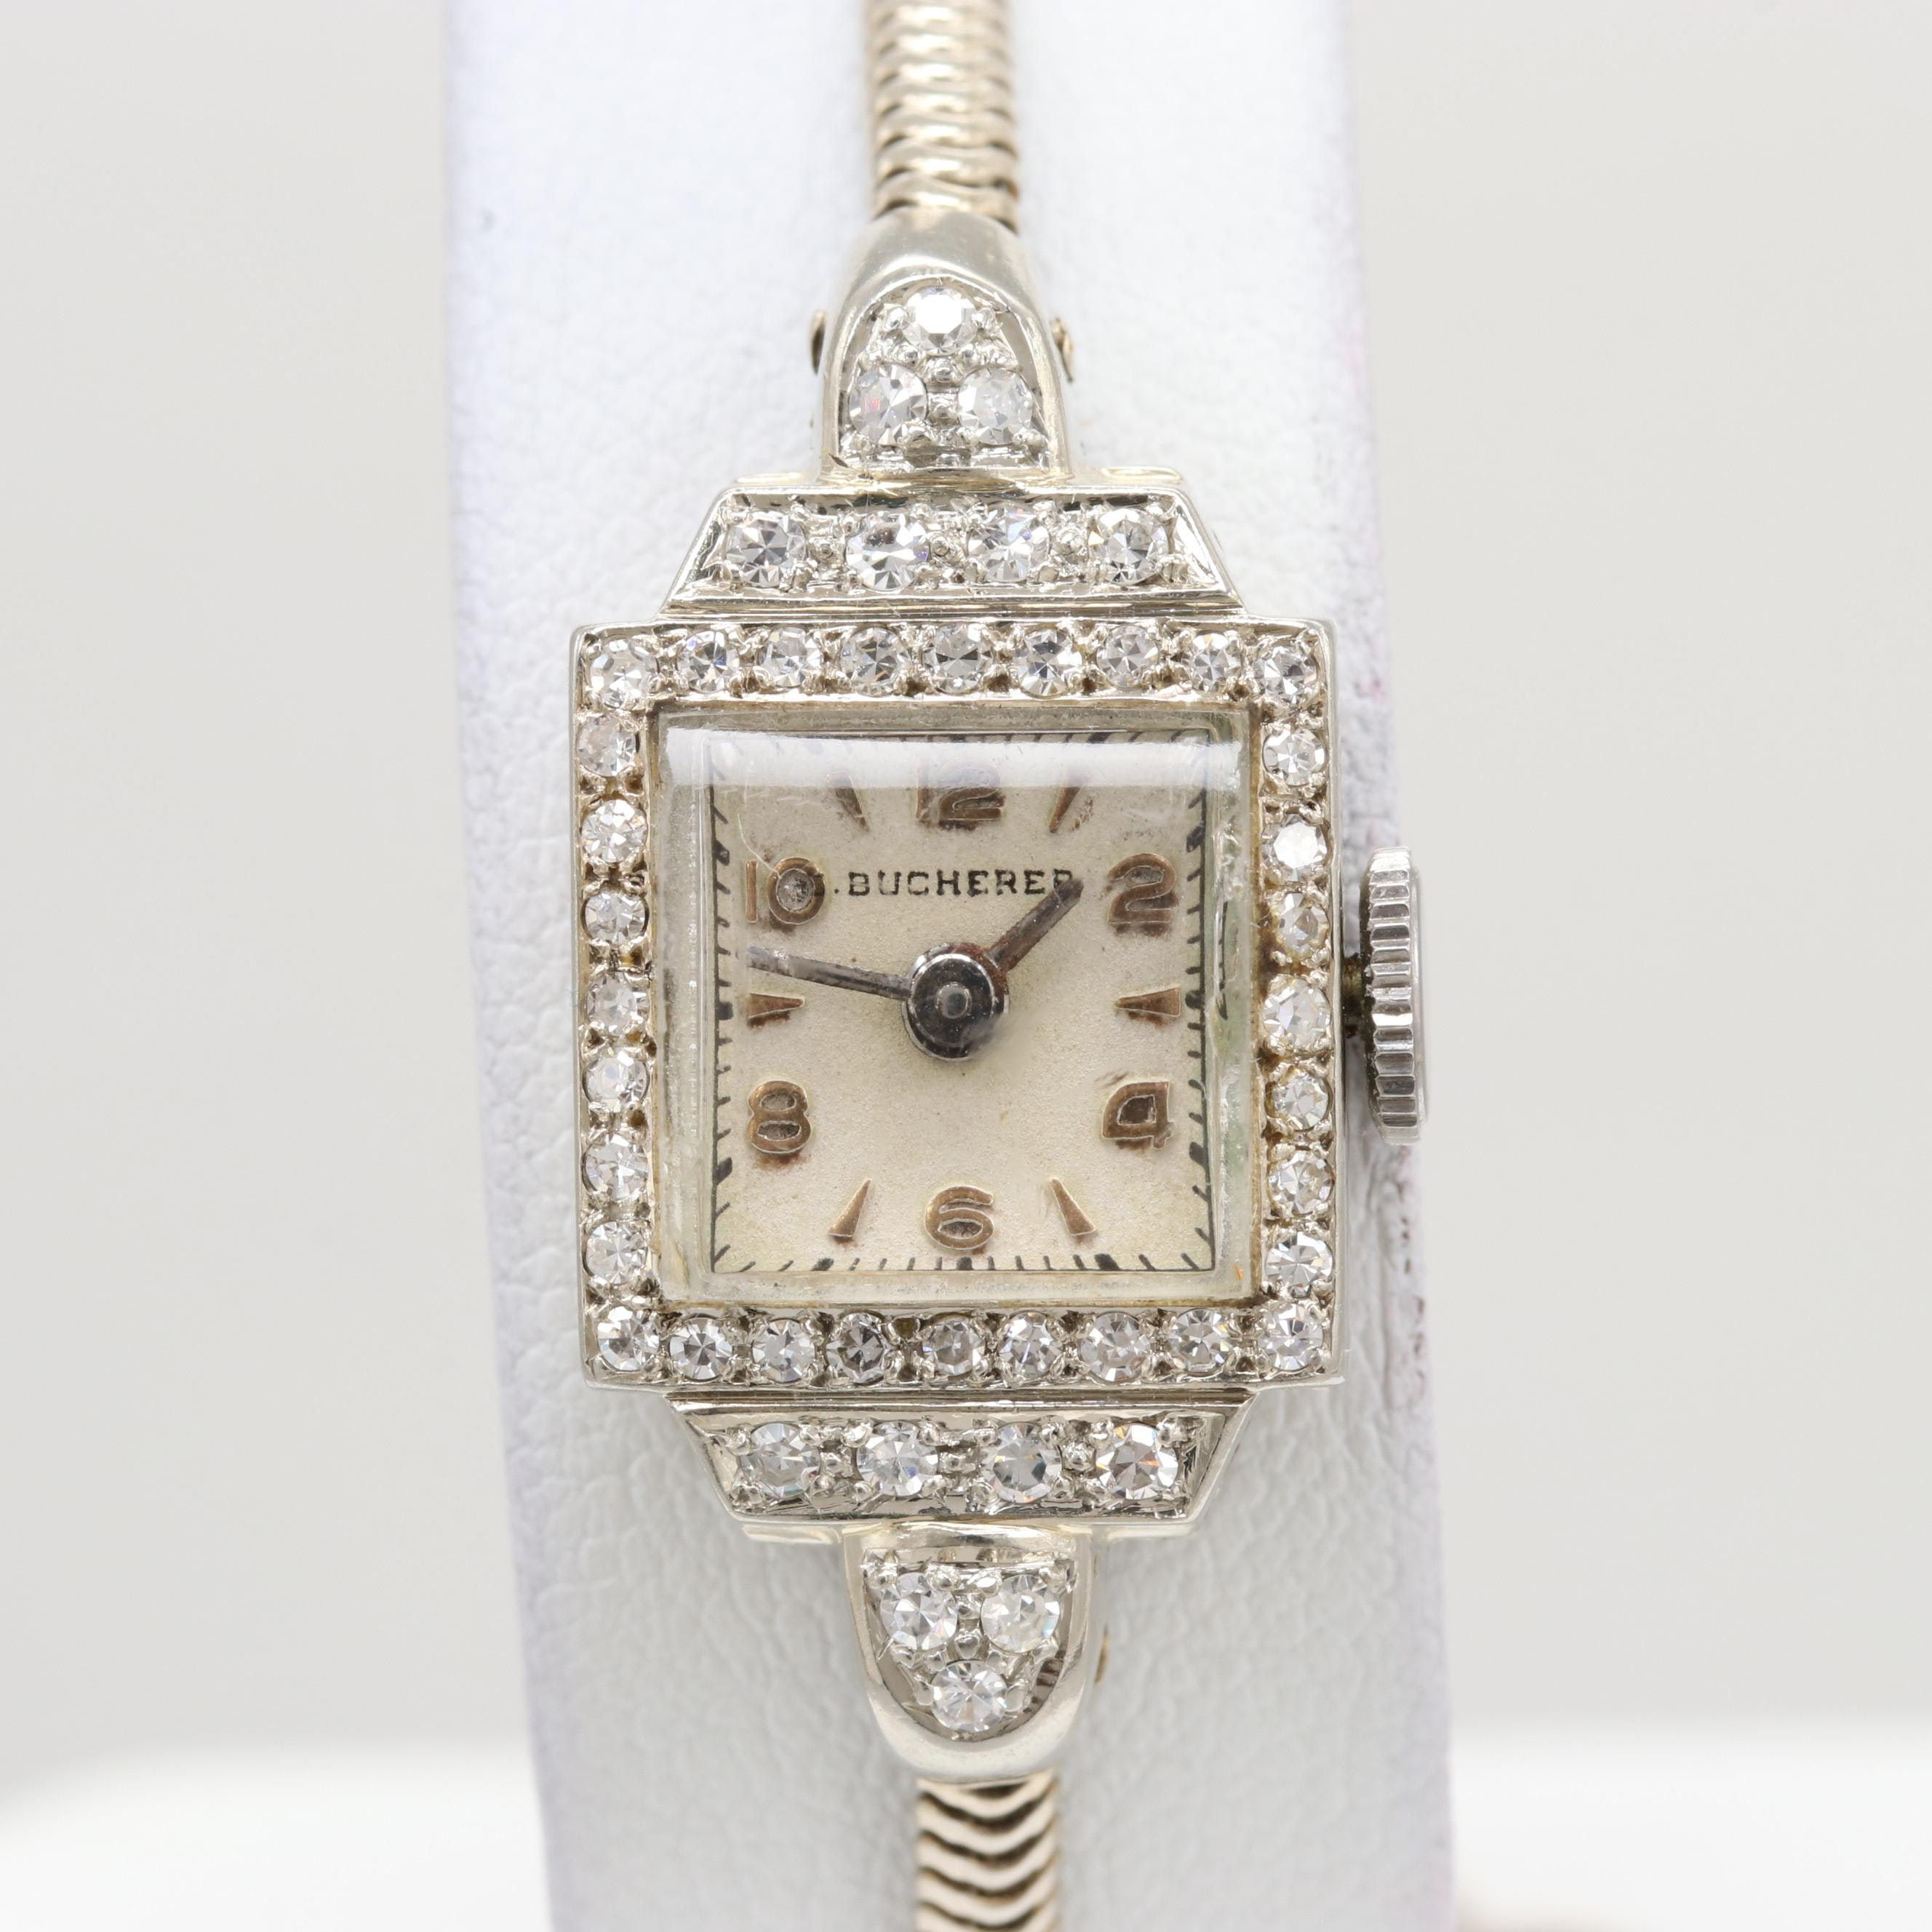 Bucherer 18K White Gold Diamond Wristwatch